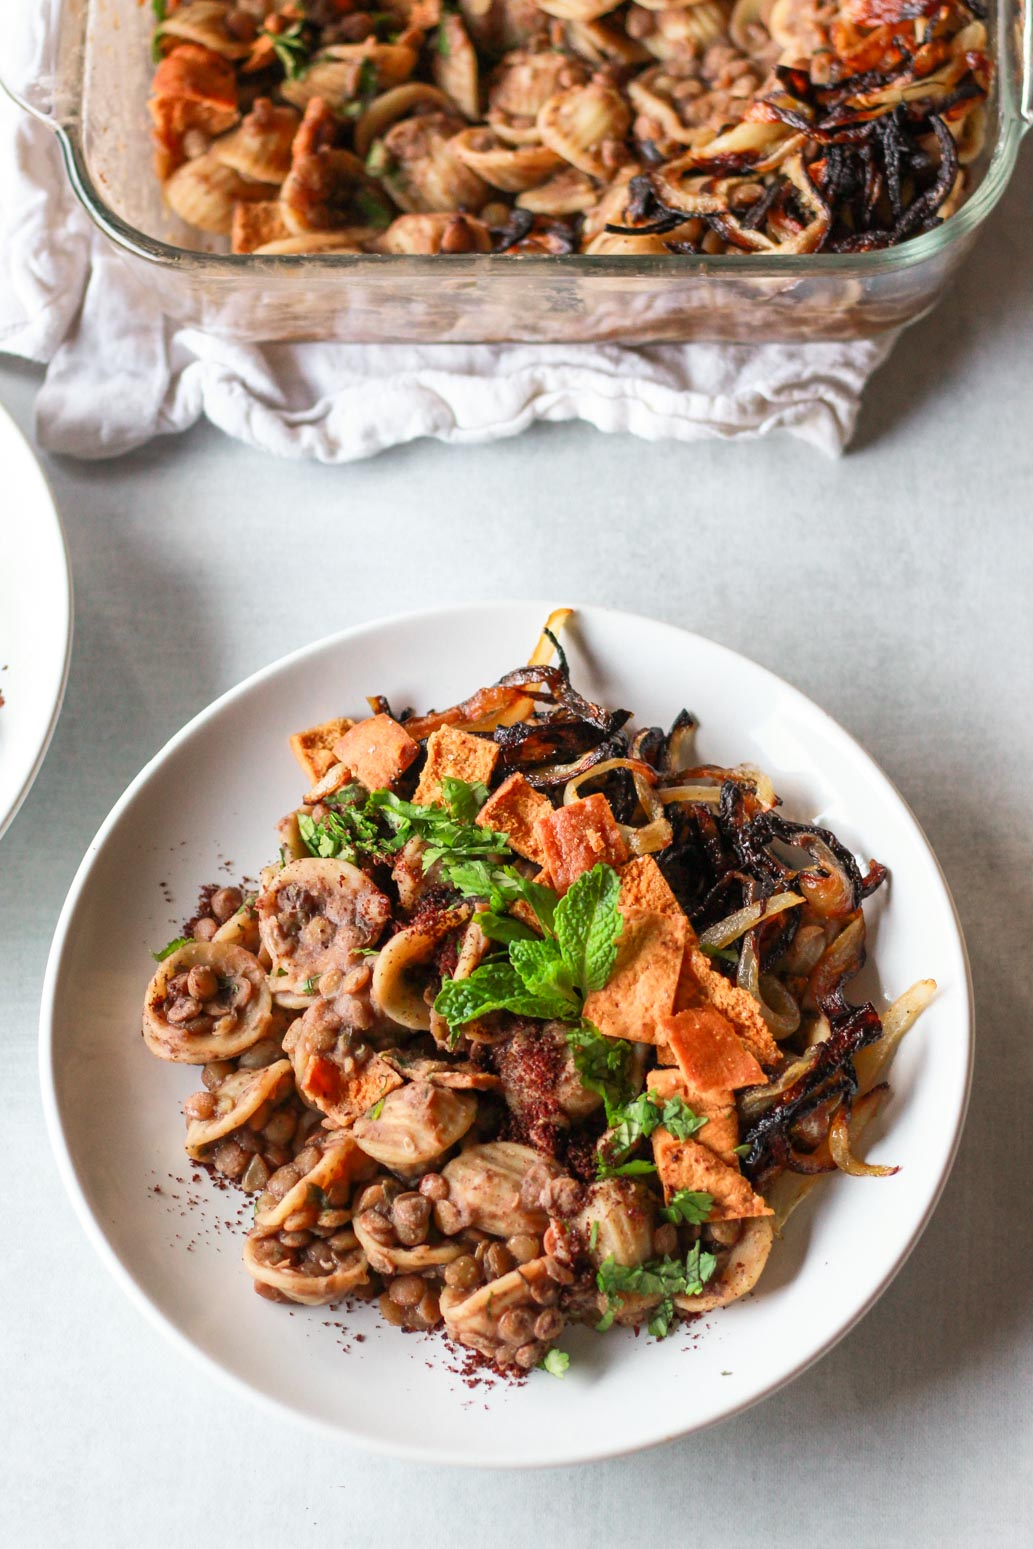 This Syrian pasta with lentils (horaa or horak osbao) is a great pantry friendly Middle Eastern comfort food. This vegan Mediterranean recipe is flavored with pomegranate molasses, sumac, and caramelized onions, and topped with crunchy pita chips.